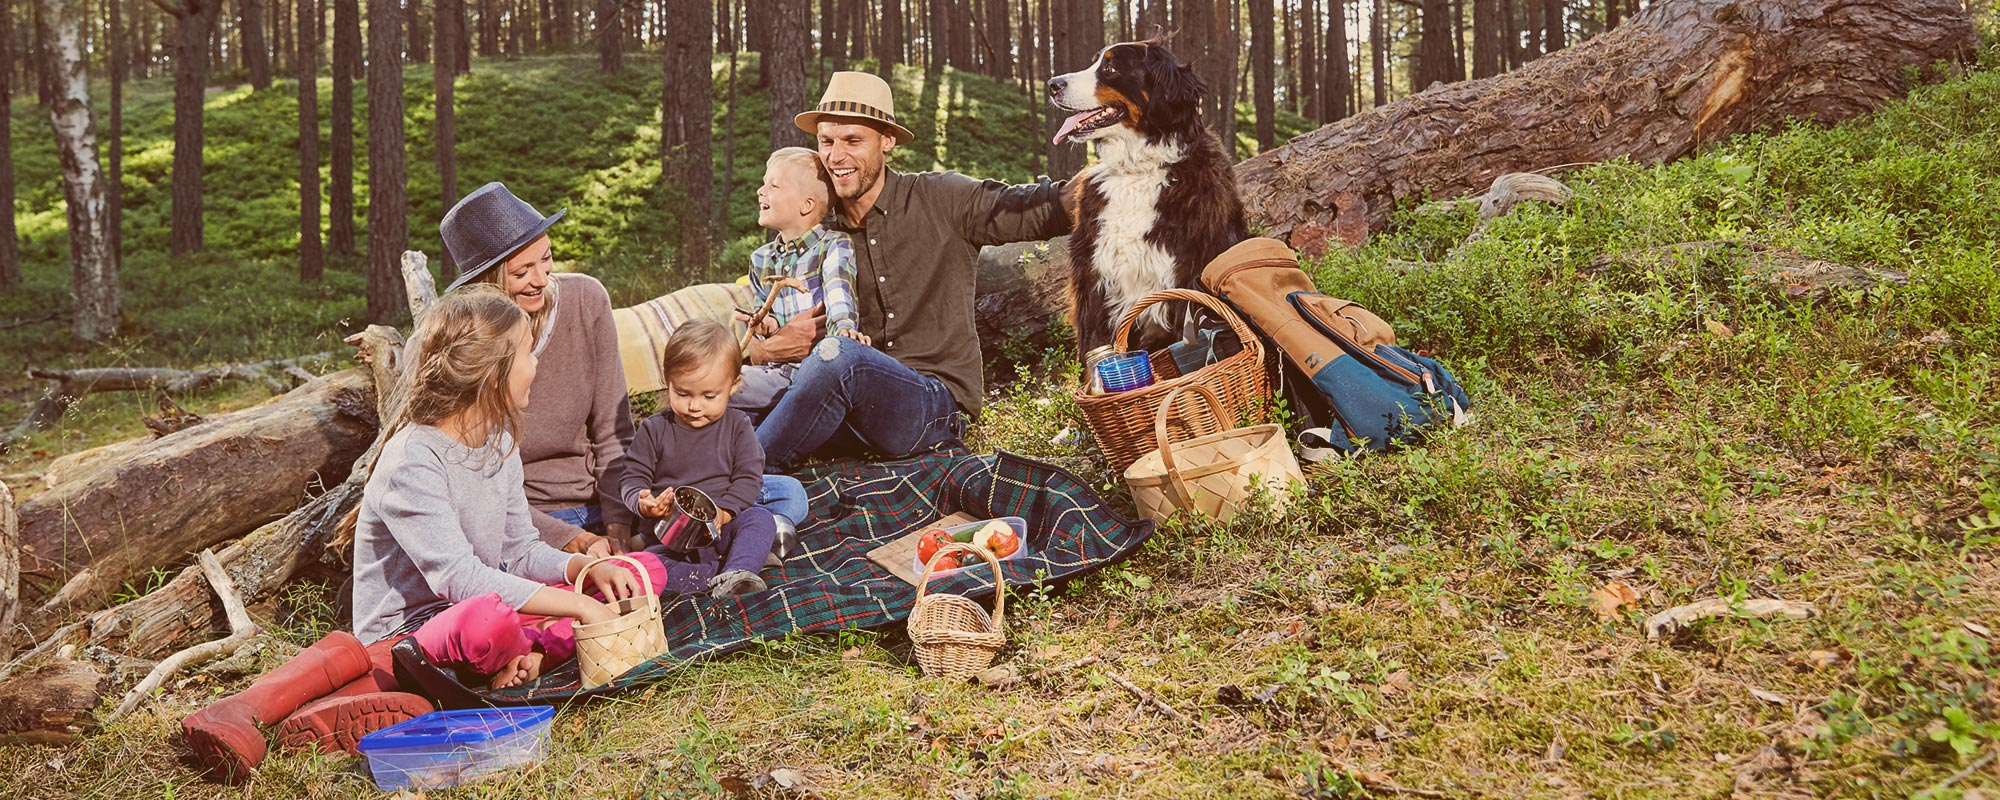 Family in a forest having a picnic